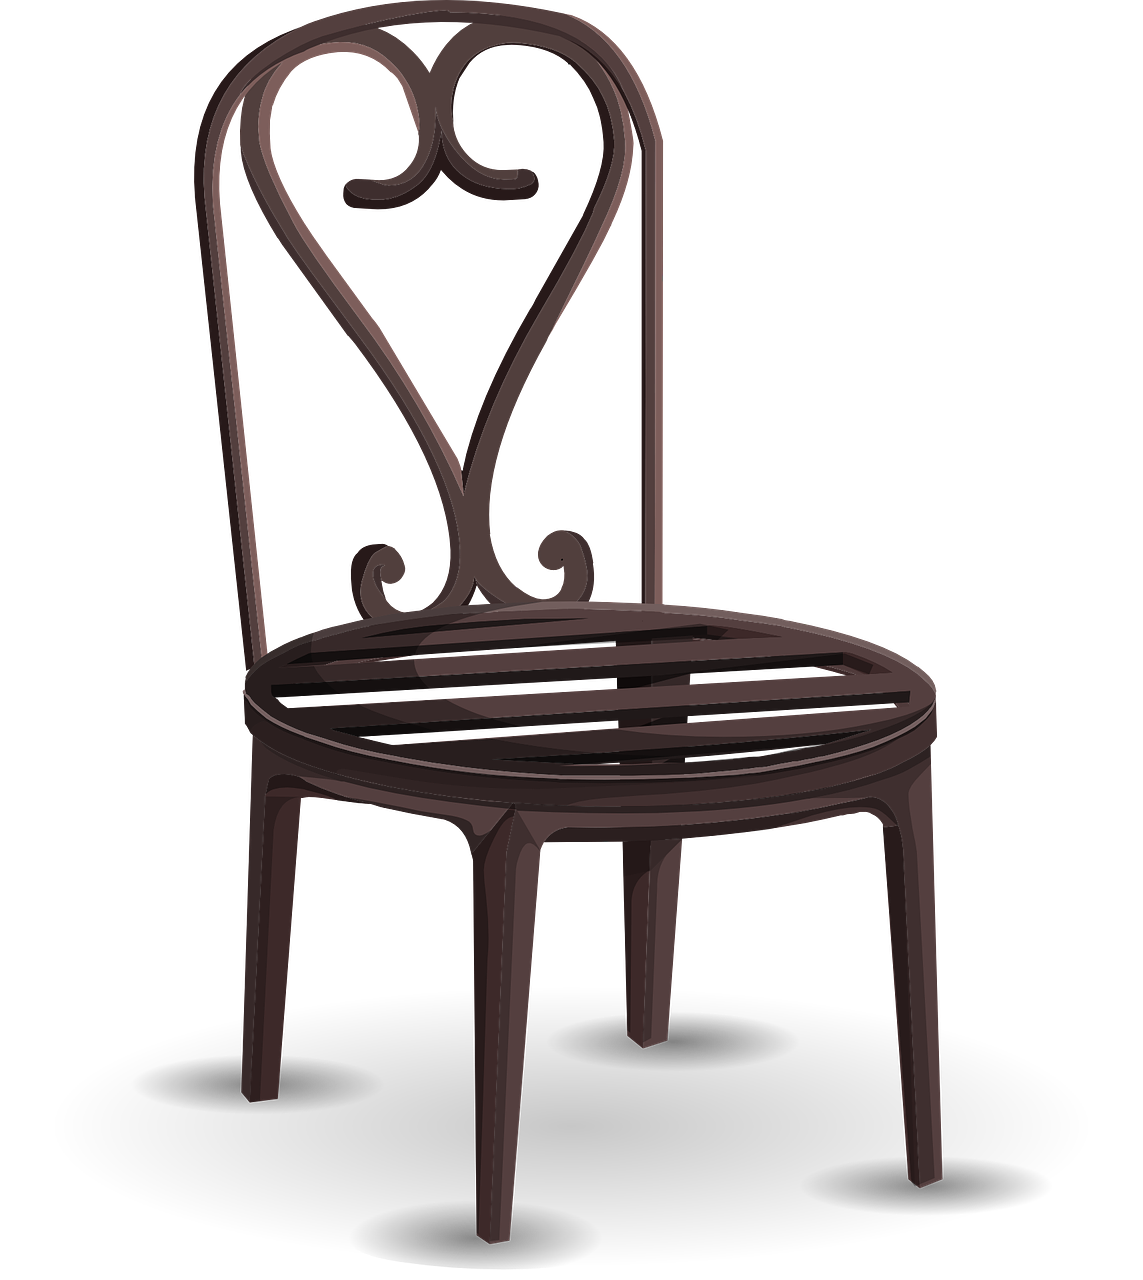 Furniture clipart house decoration. Home decor chairs seats